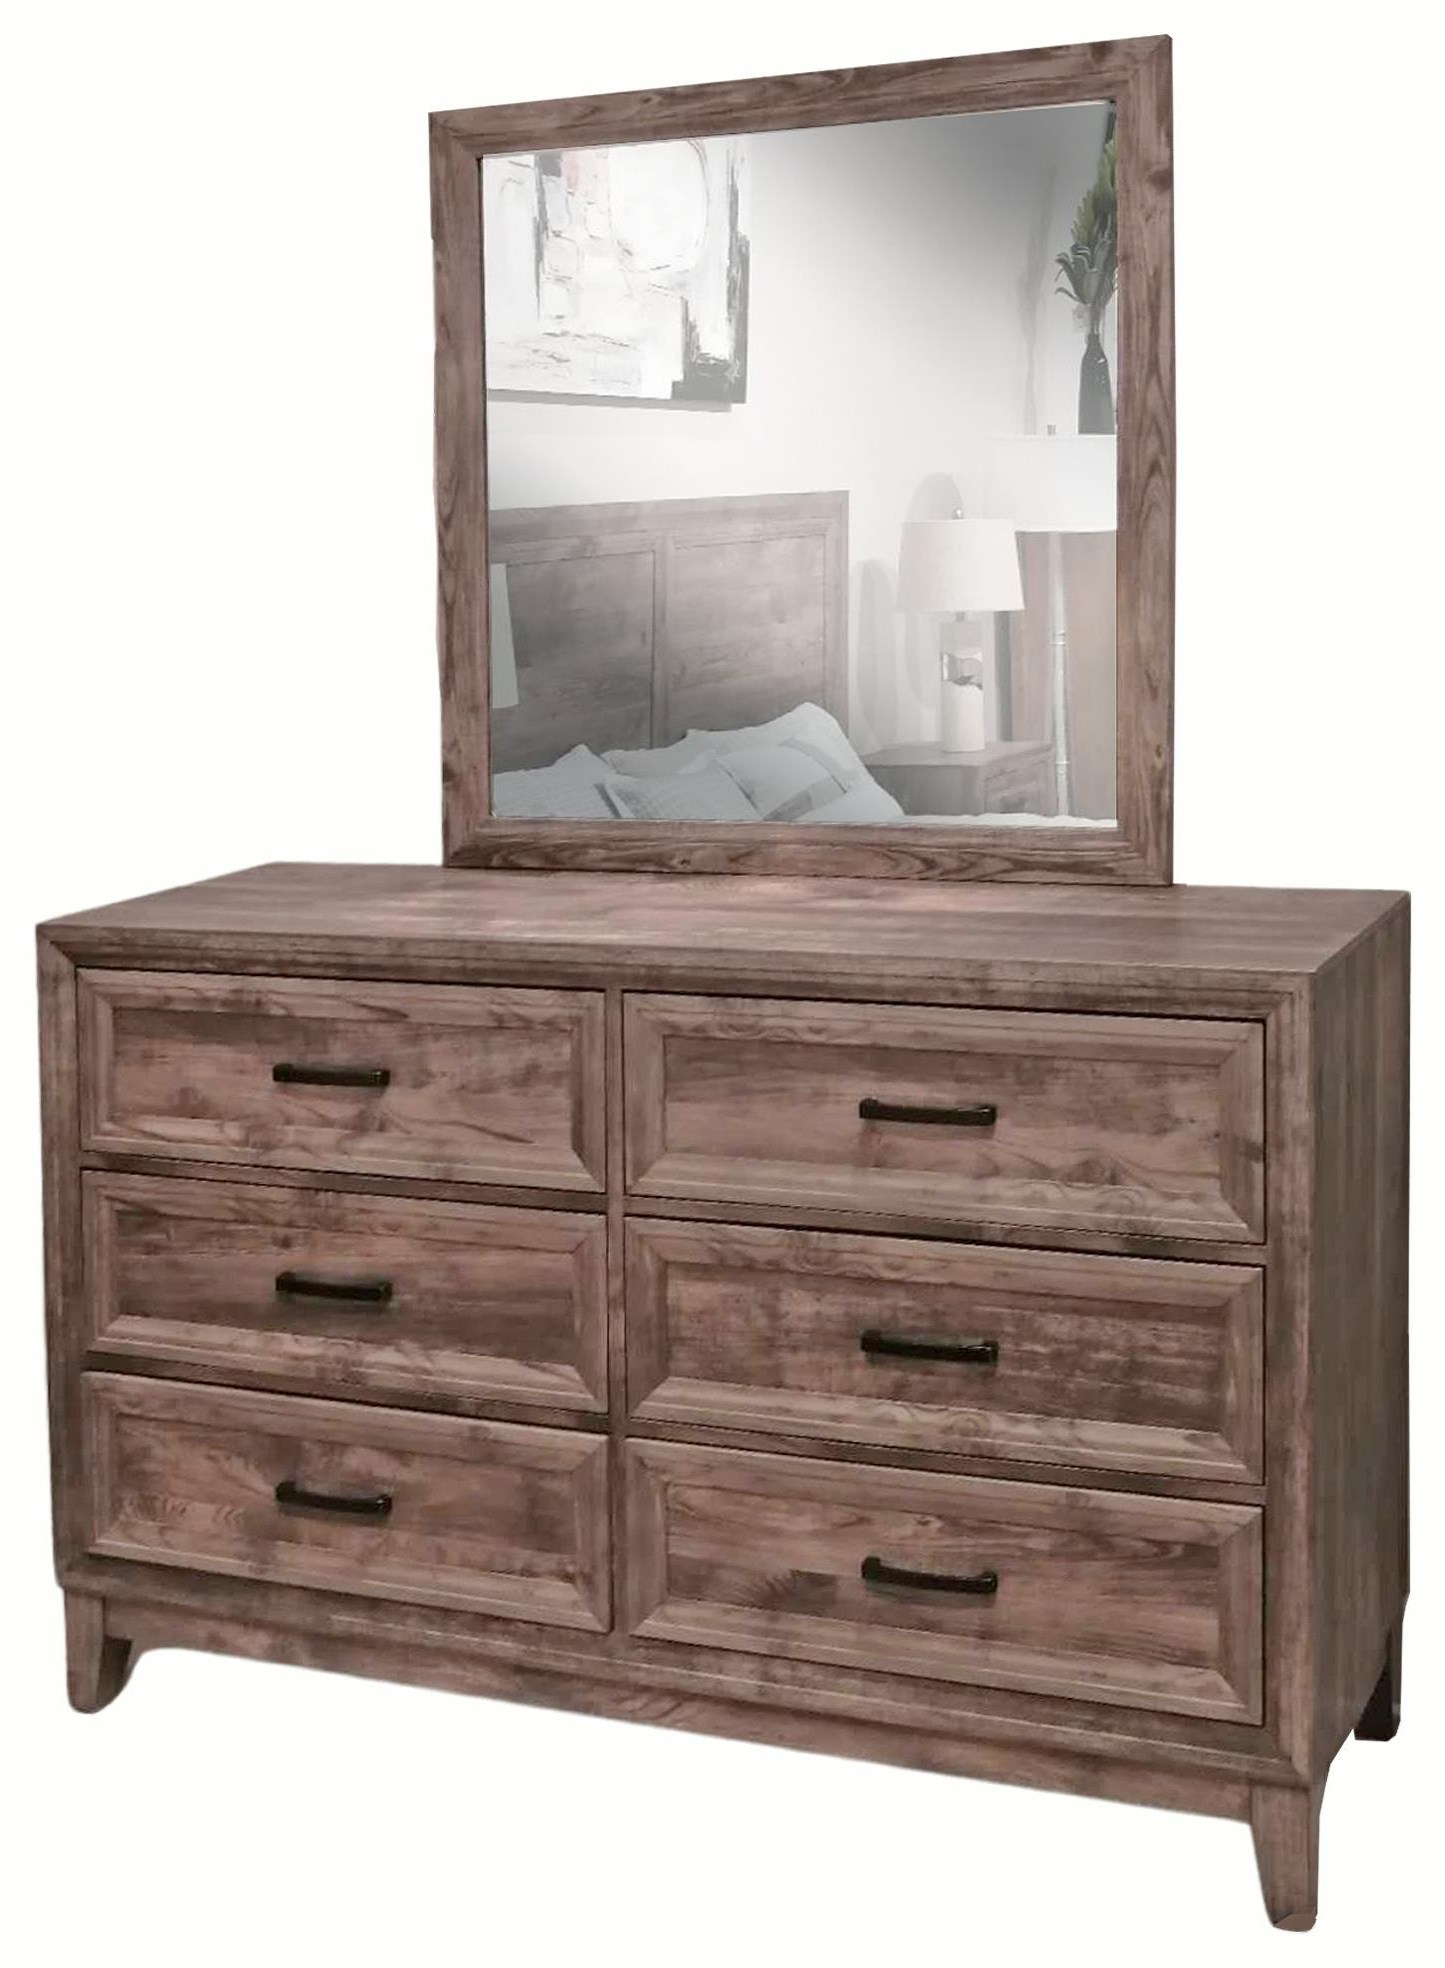 JA384 384-BR31 | Dresser by Liberty Furniture at Upper Room Home Furnishings